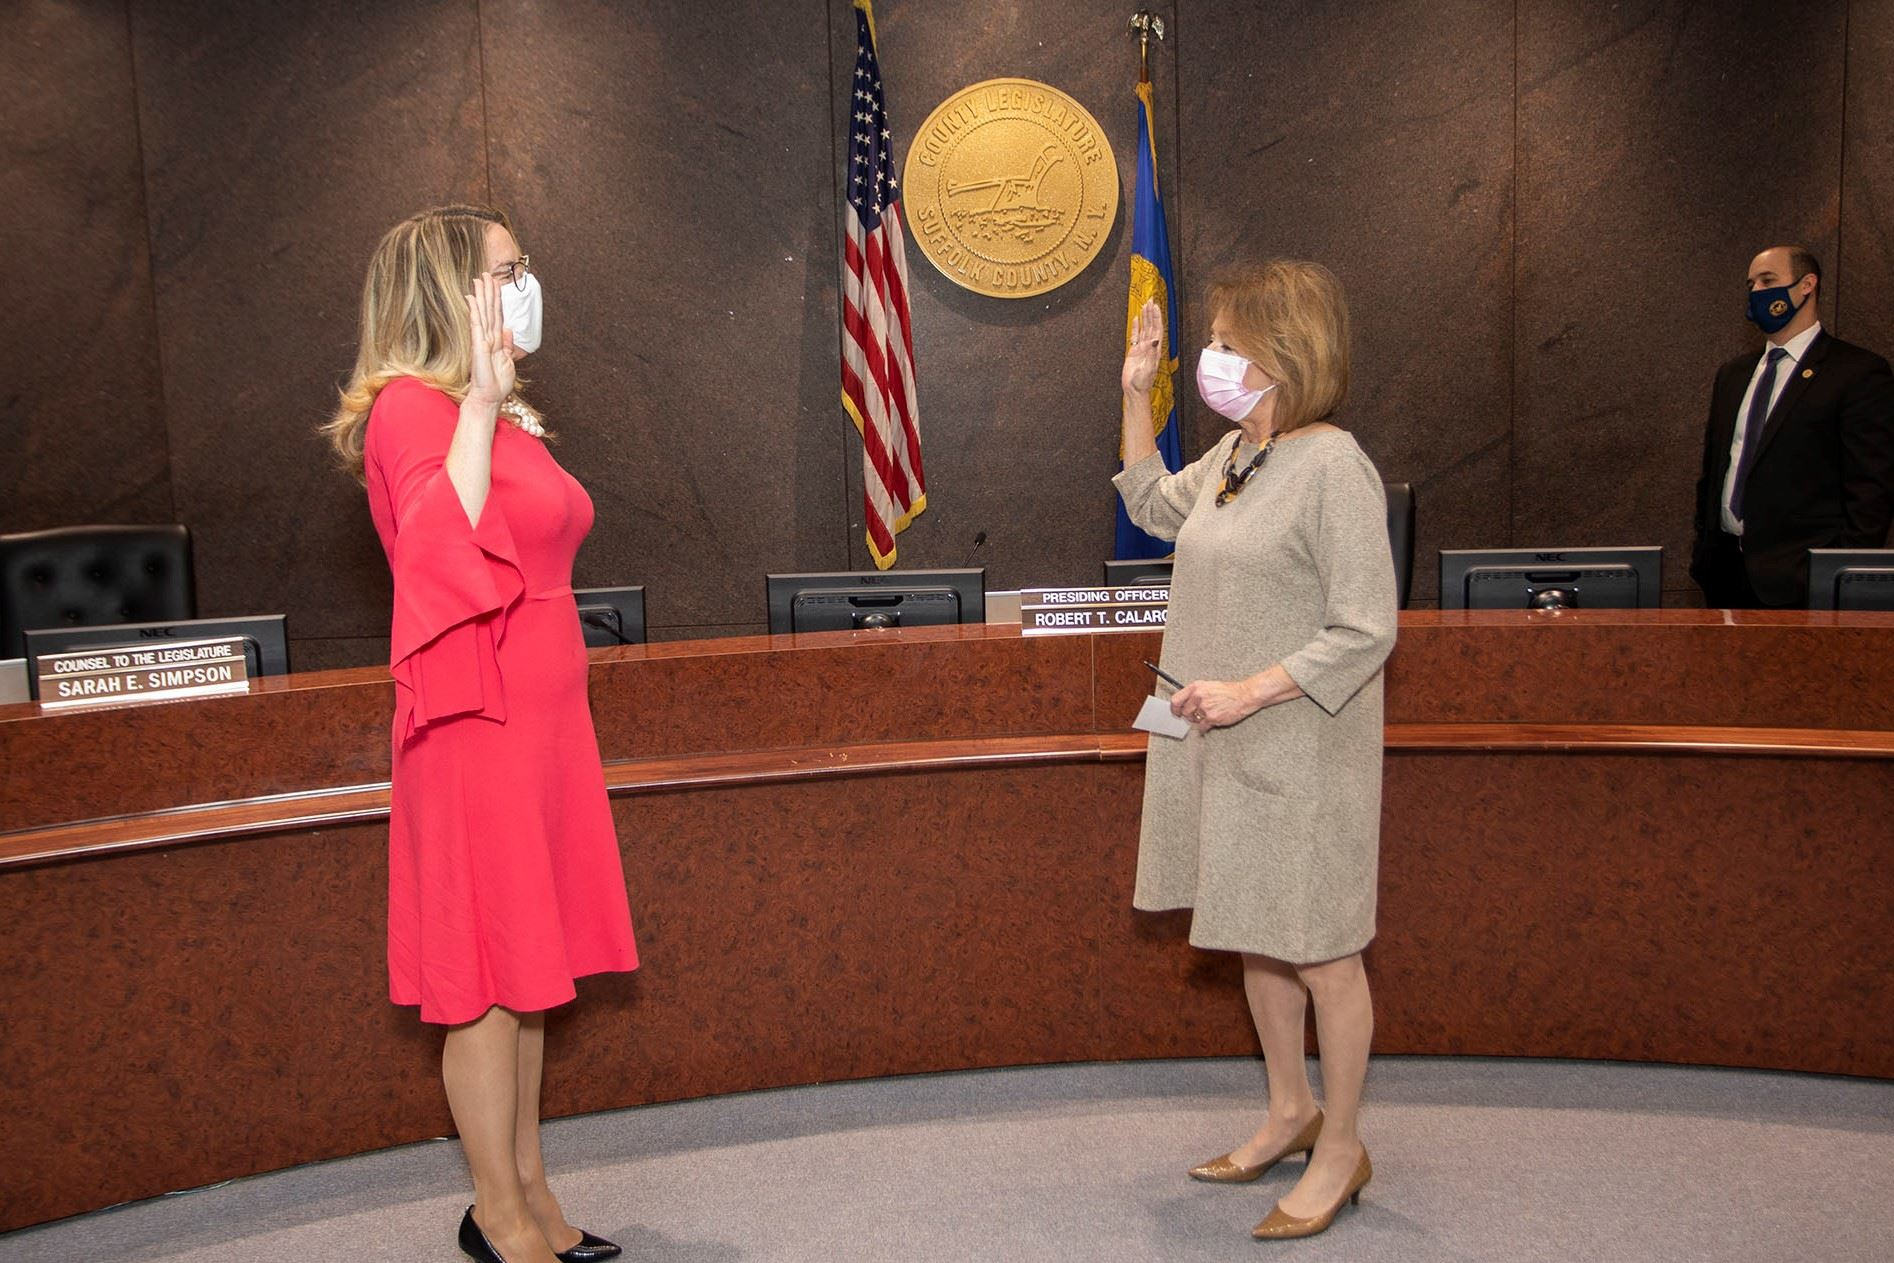 Kara Hahn Reelected as Legislature's Deputy Presiding Officer Oath of Office Photo Image